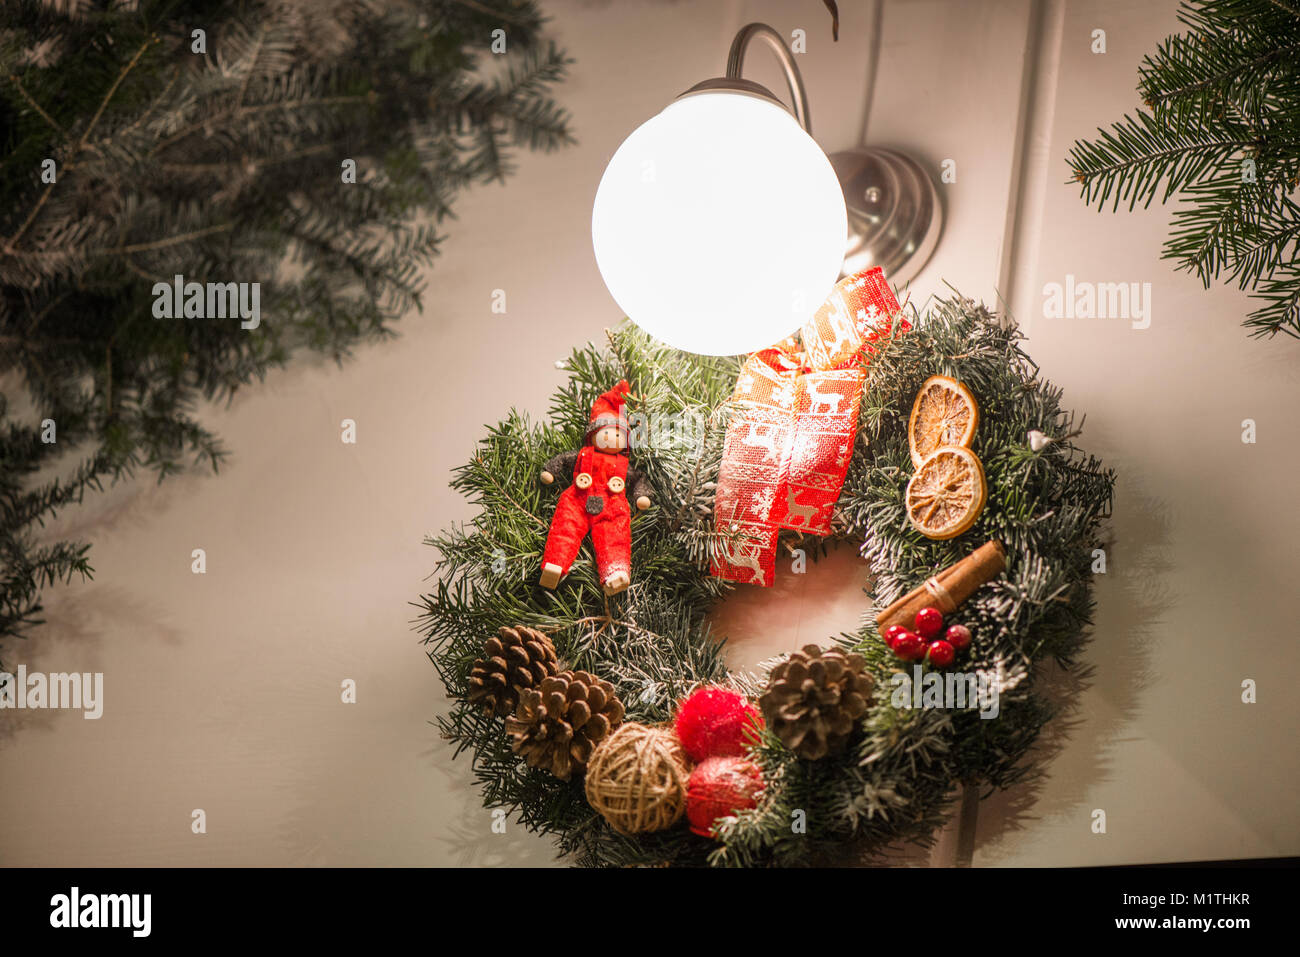 Hanging Christmas Decorations Outside.Beautiful Christmas Decorations Hanging On Doors Outside The